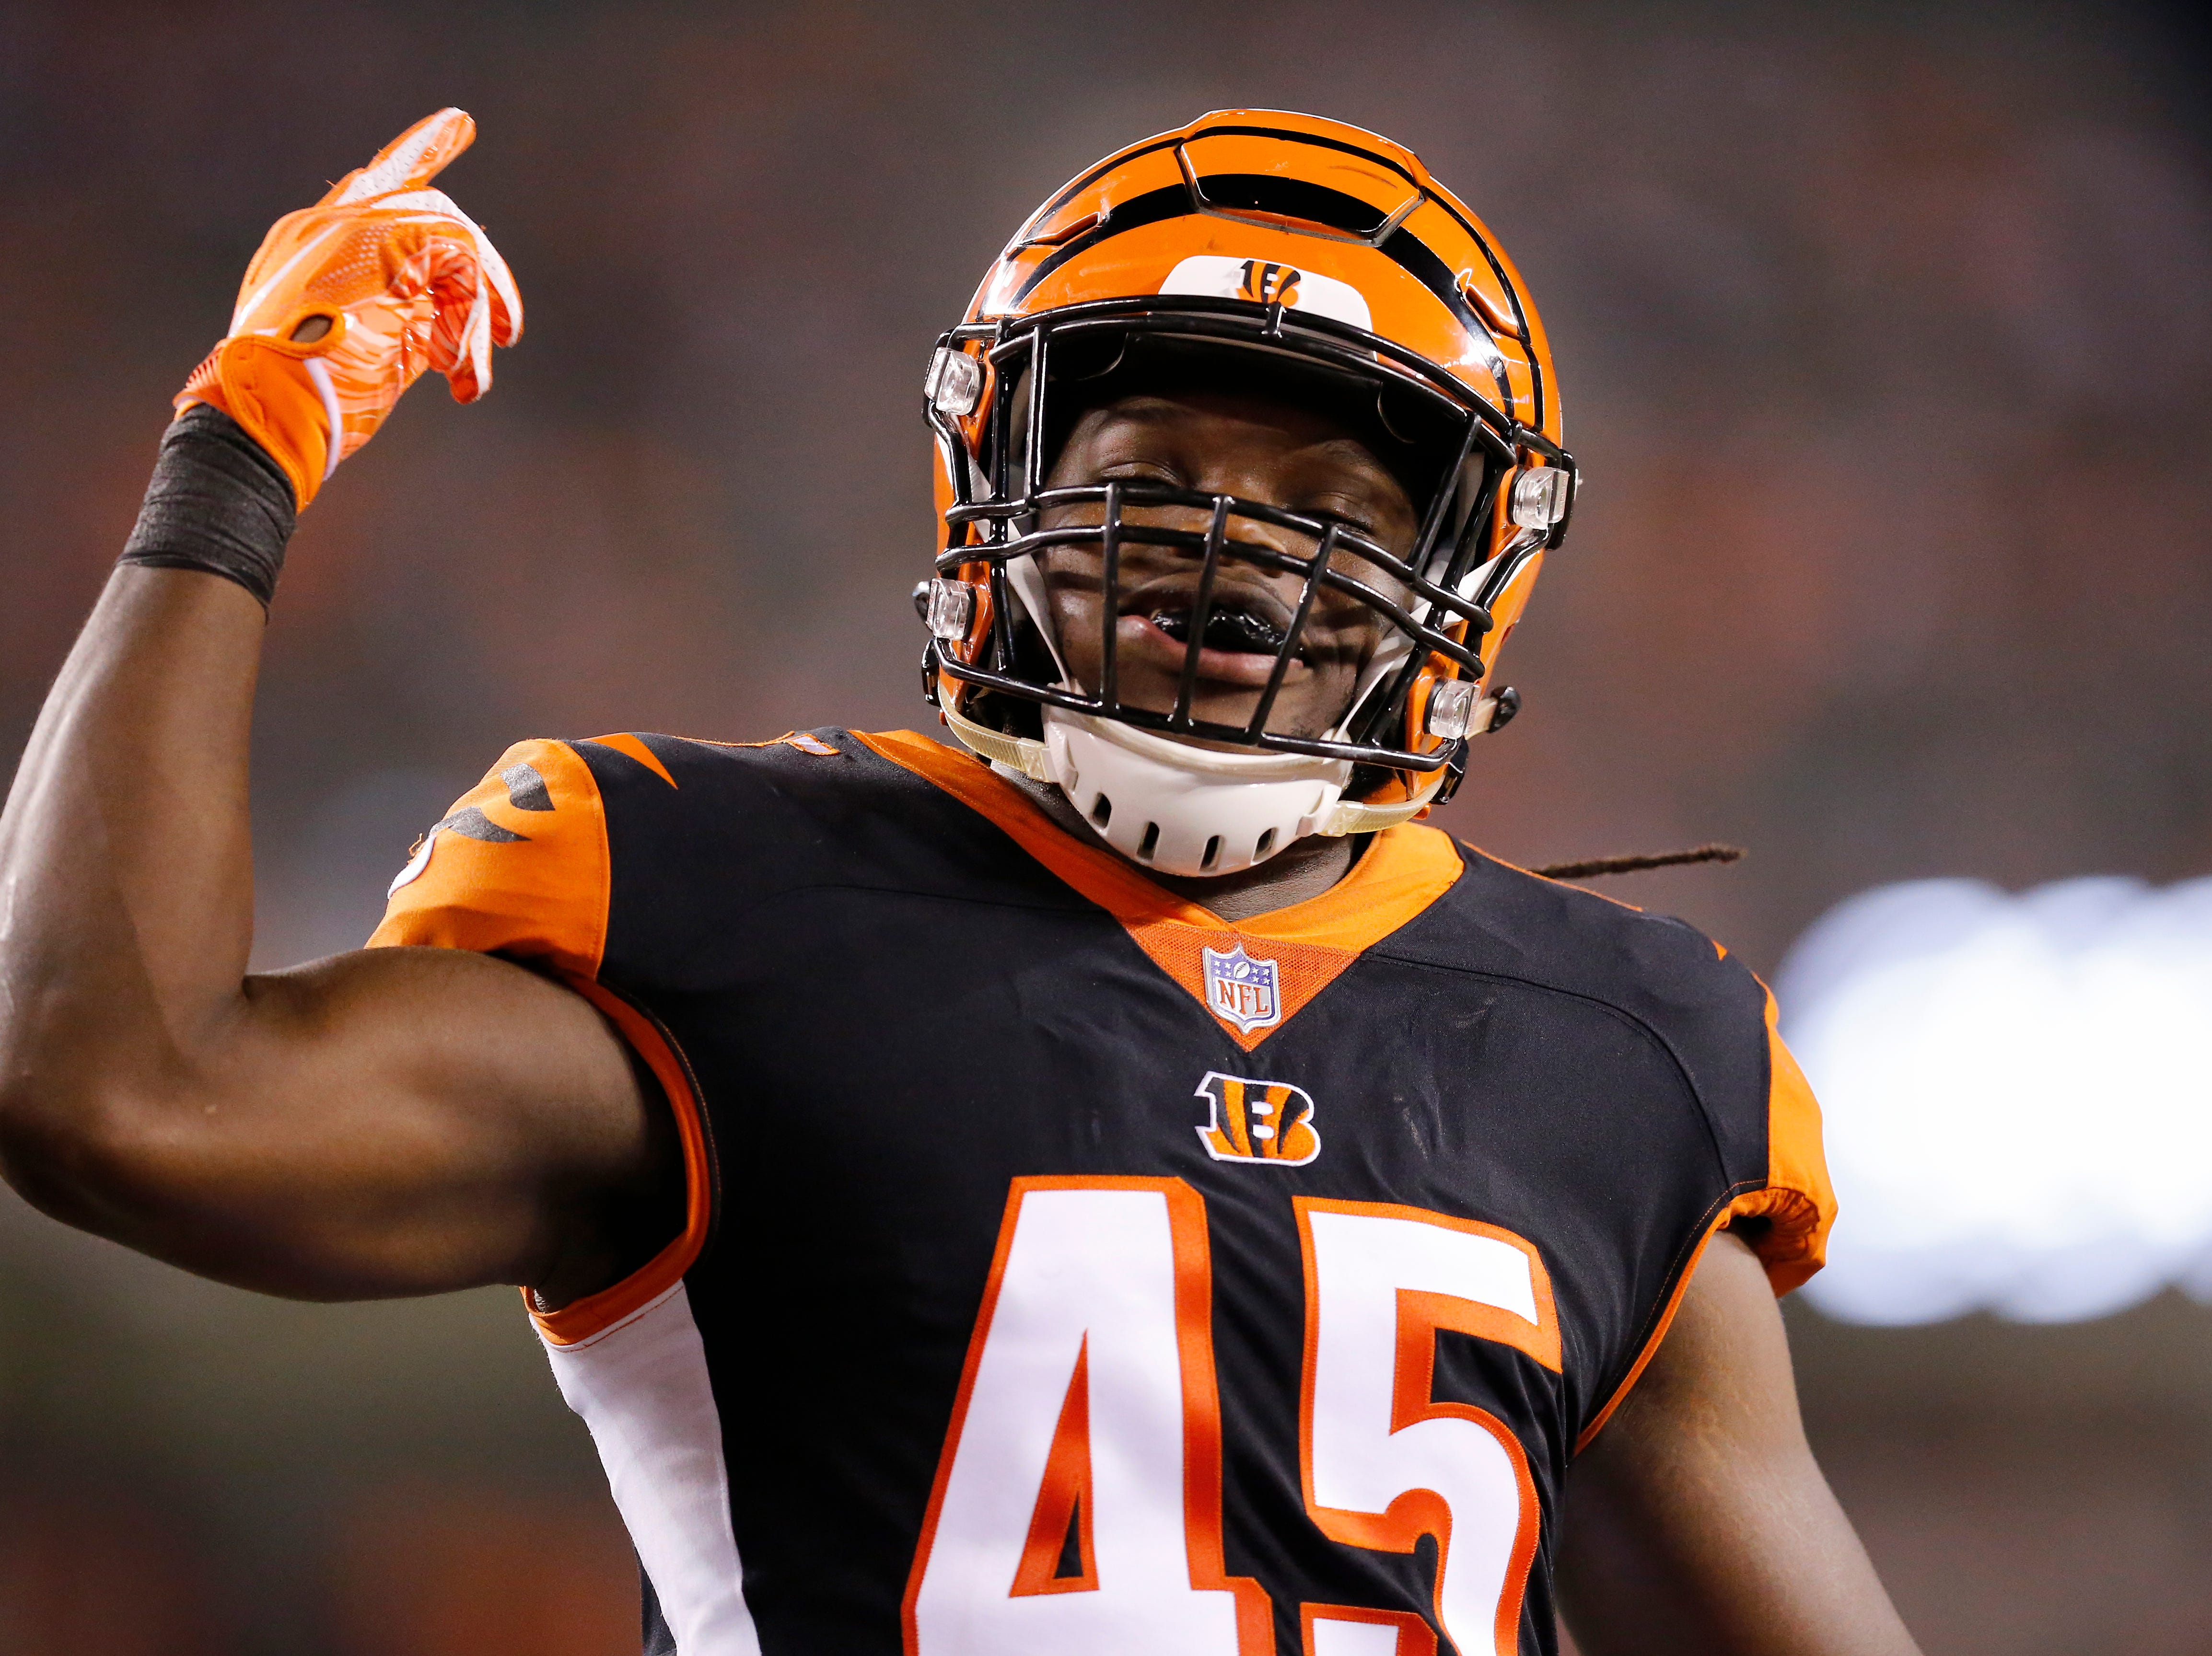 Cincinnati Bengals linebacker Malik Jefferson (45) pumps up the fans after a kick off in the fourth quarter of the NFL Week 2 game between the Cincinnati Bengals and the Baltimore Ravens at Paul Brown Stadium in downtown Cincinnati on Thursday, Sept. 13, 2018. The Bengals improved to 2-0 on the season with a 34-23 win over the Ravens.